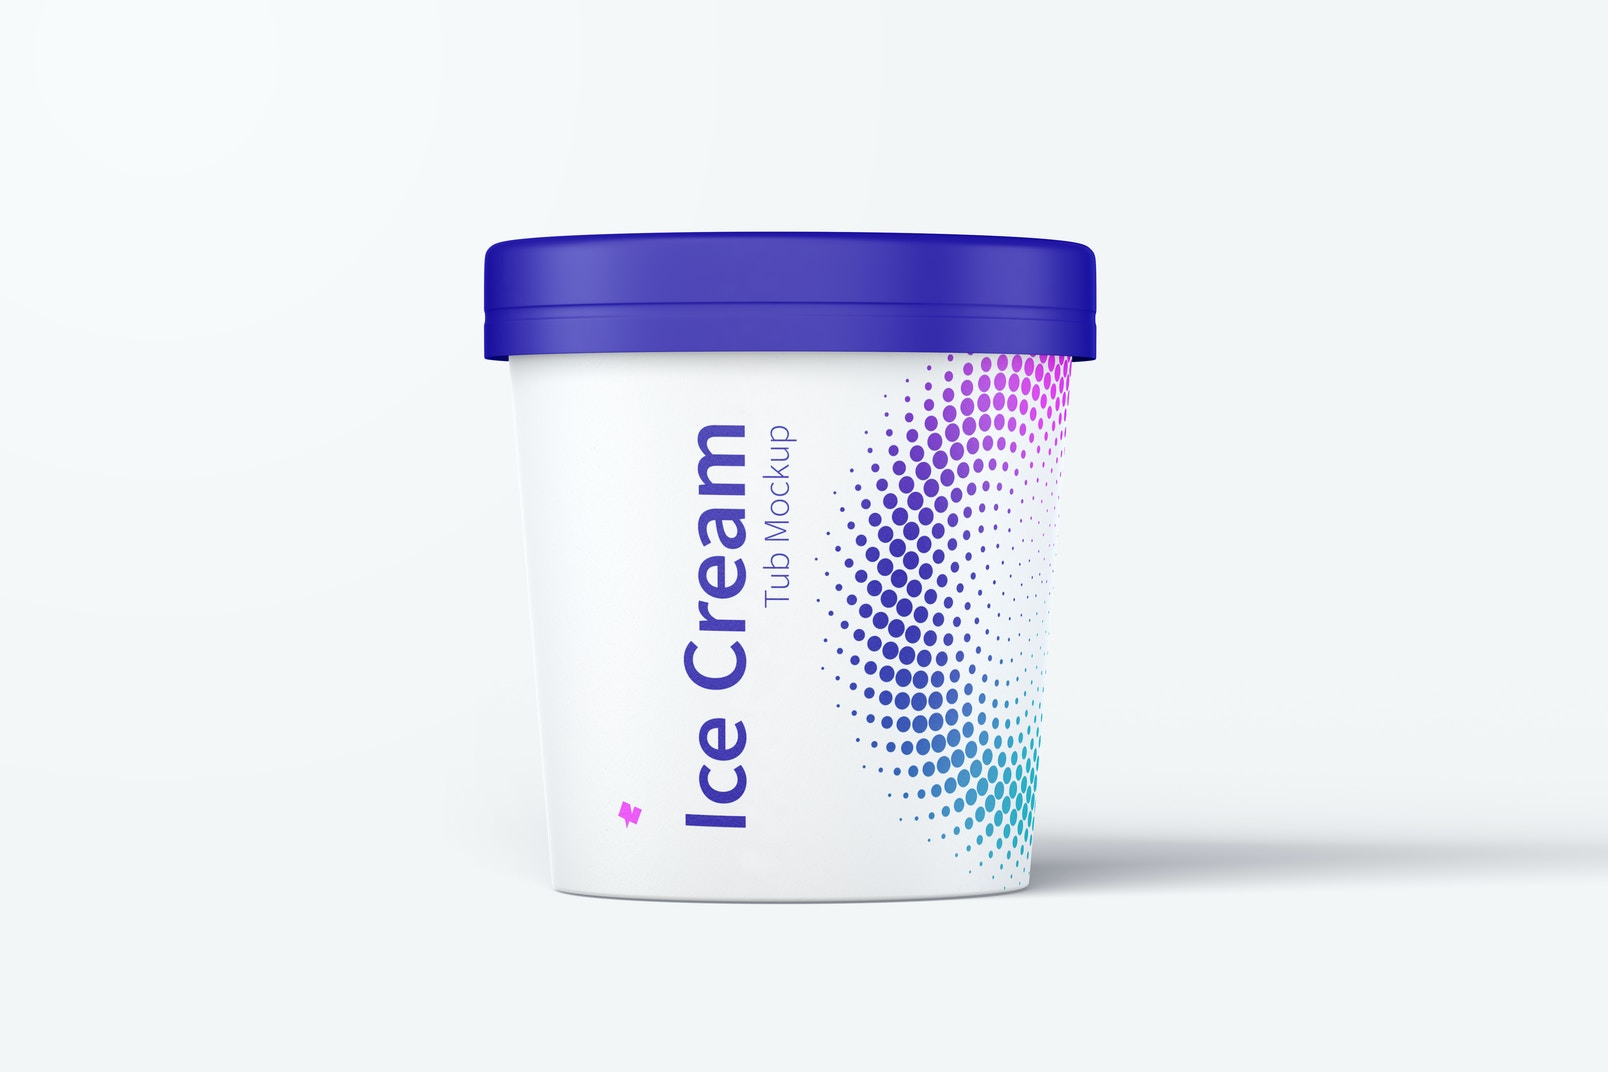 500ml Ice Cream Paper Tub Mockup, Front View